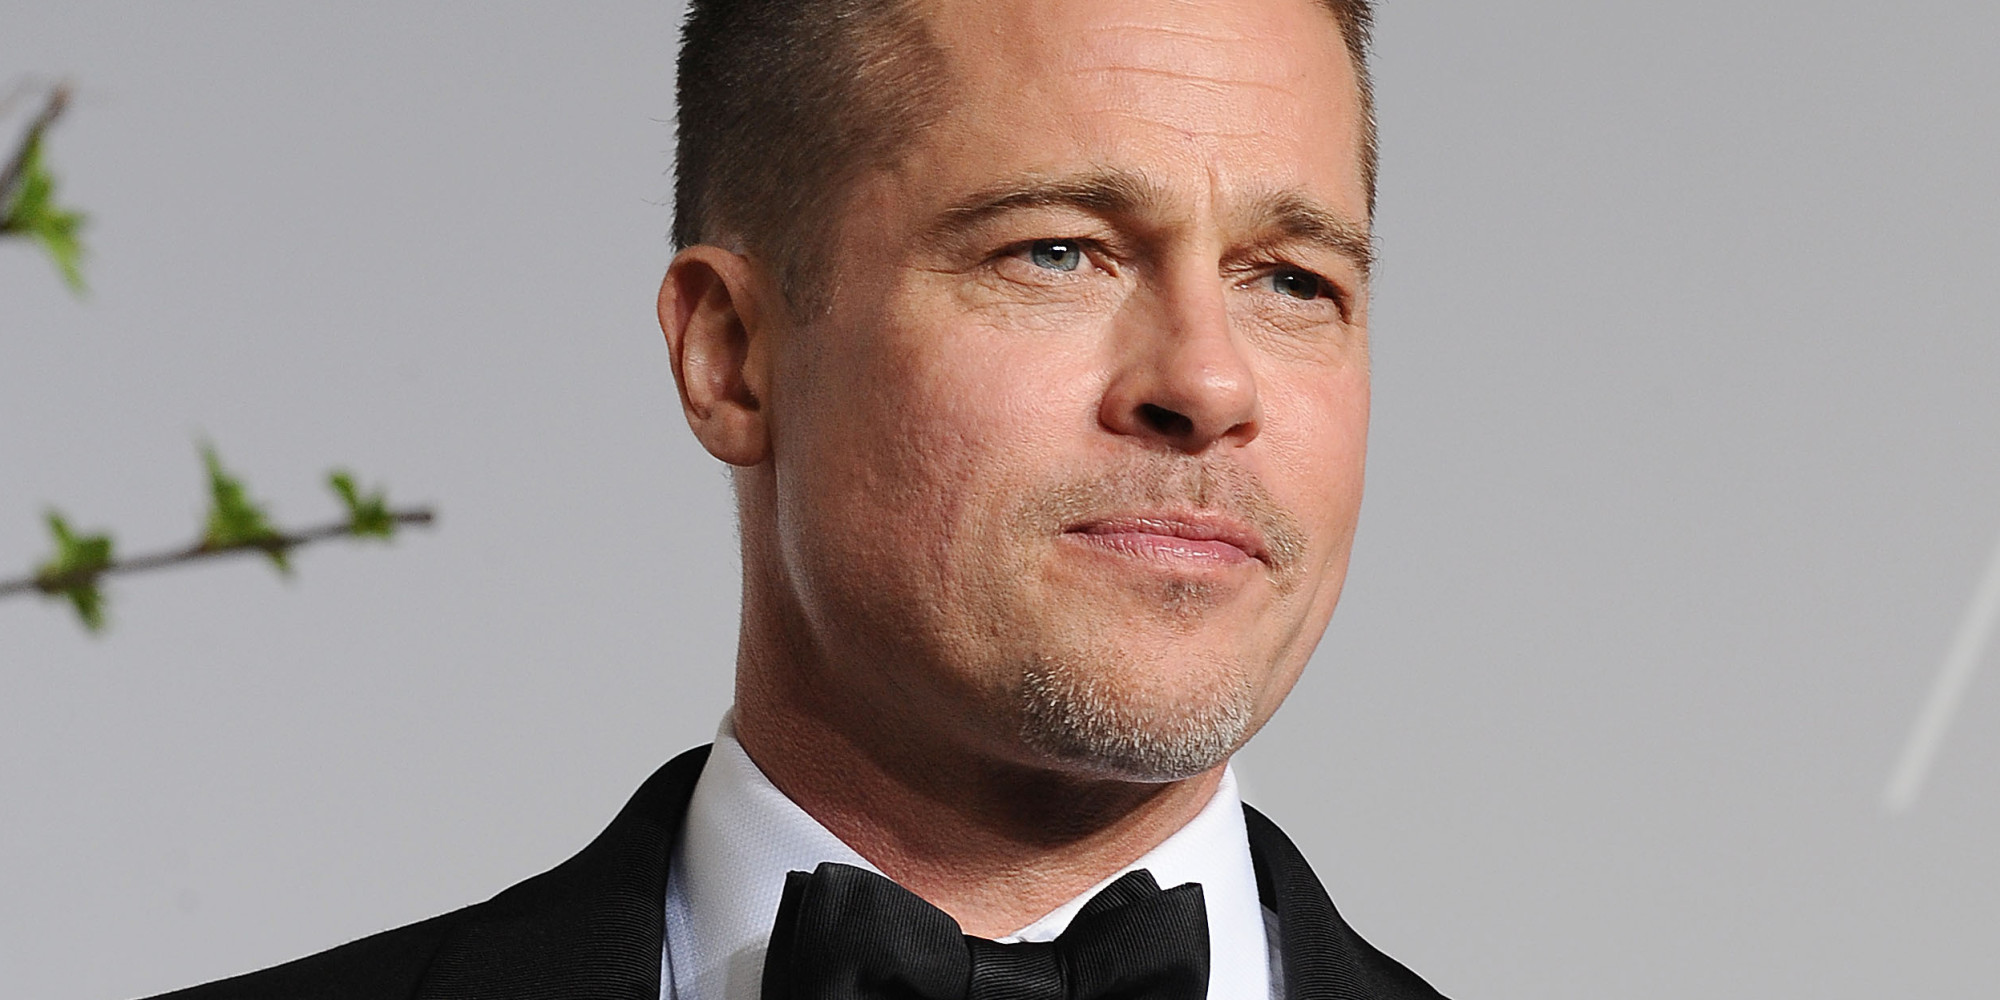 brad pitt oscarbrad pitt 2016, brad pitt 2017, brad pitt movies, brad pitt instagram, brad pitt films, brad pitt filmleri, brad pitt fury, brad pitt filmi, brad pitt fight club, brad pitt height, brad pitt young, brad pitt wiki, brad pitt news, brad pitt allied, brad pitt hairstyle, brad pitt tattoo, brad pitt biography, brad pitt troy, brad pitt jennifer aniston, brad pitt oscar